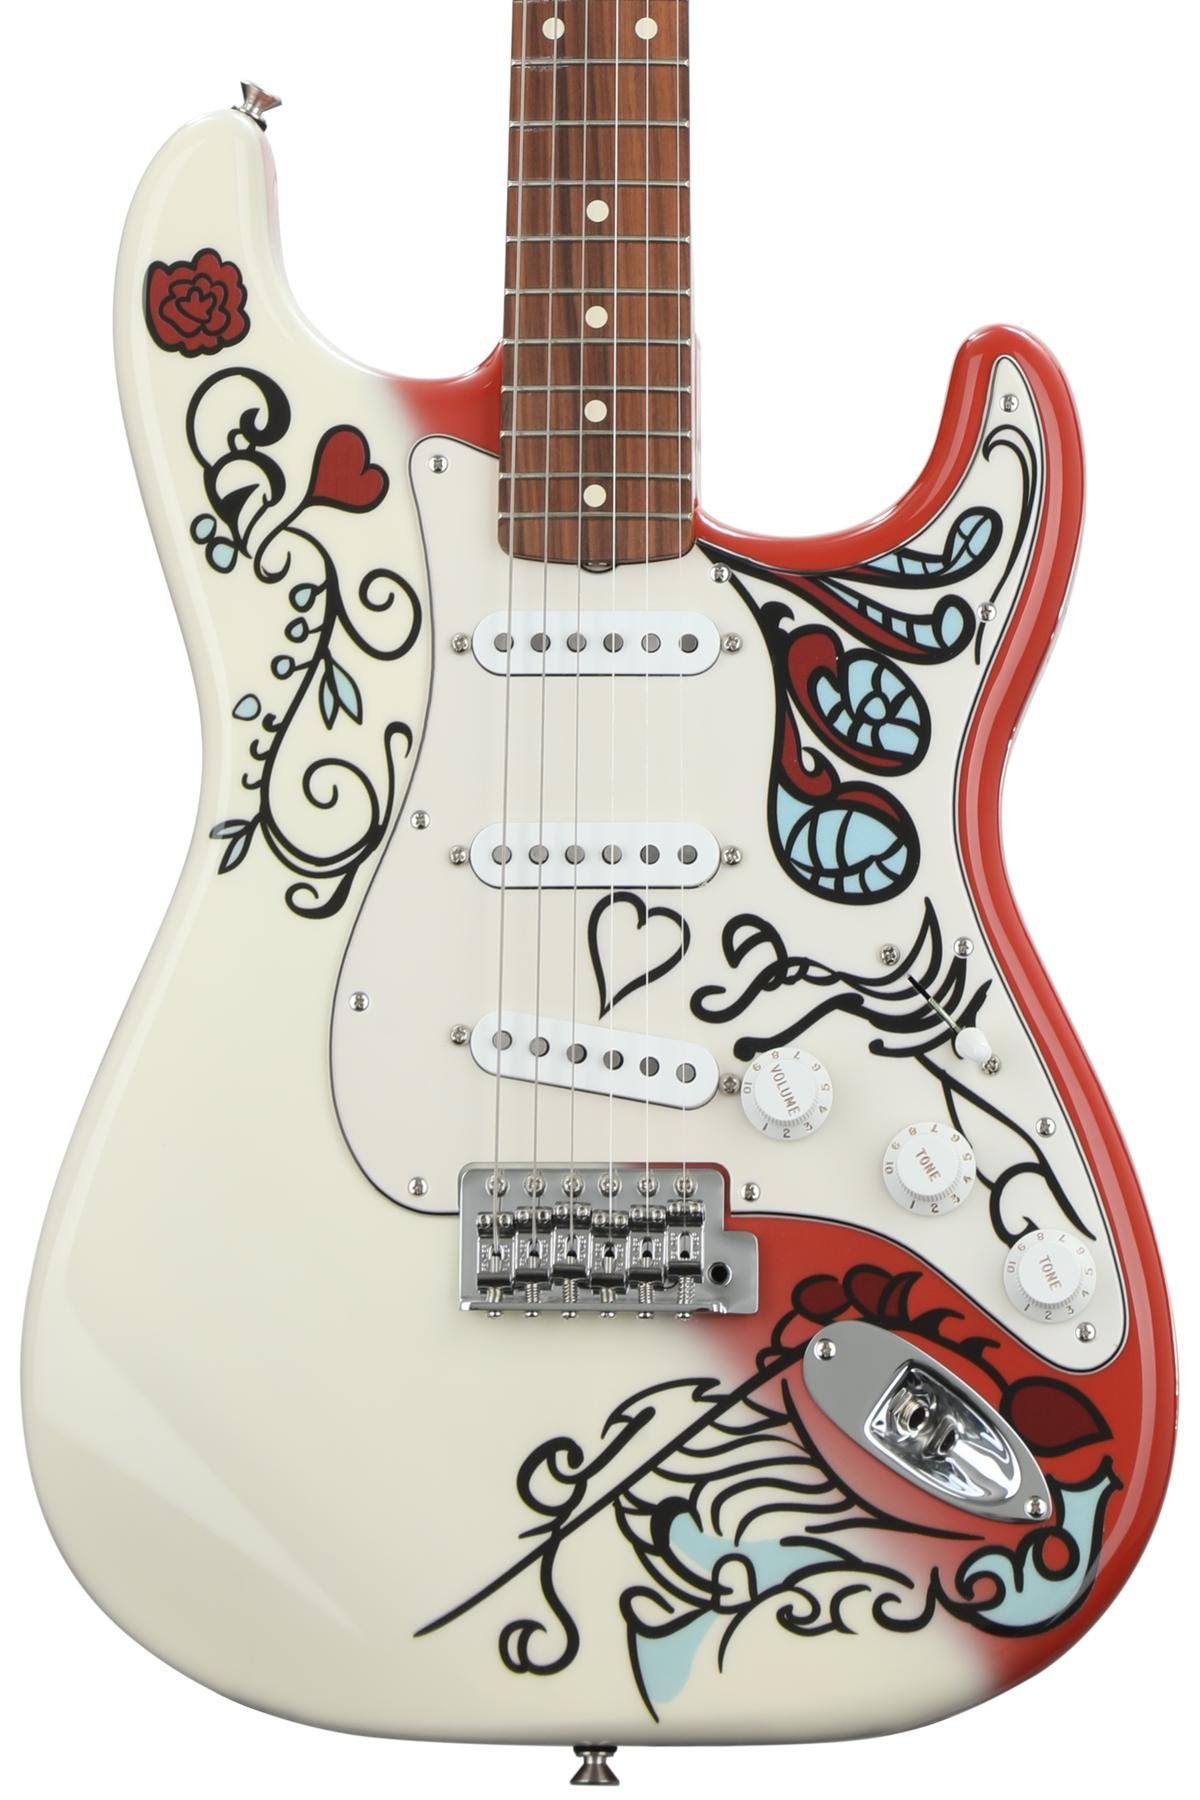 Fender Jimi Hendrix Monterey Stratocaster Sweetwater Electric Guitars Telecaster Pick Guard Ok I Can Get A Diagram Out To Image 1